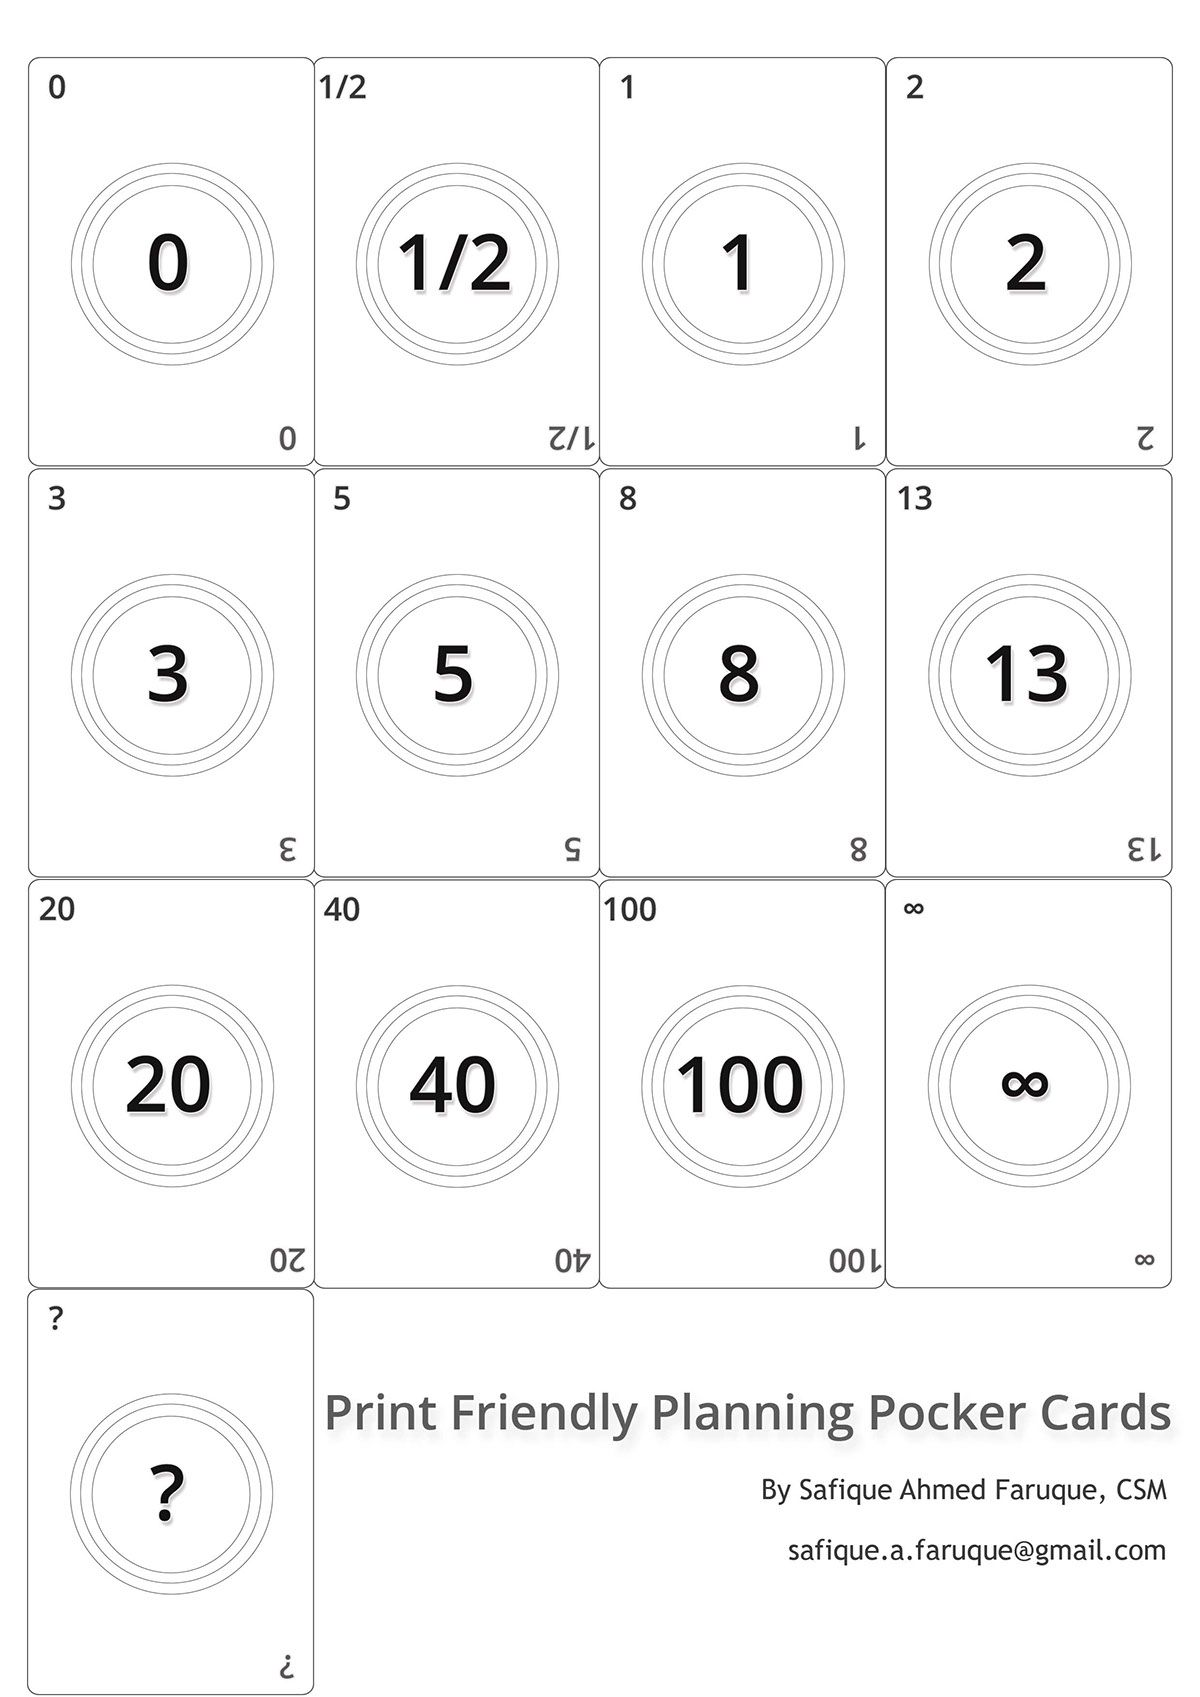 Picture Agile Planning Poker Cards Black And White Print Friendly Cards To Print Planning Poker Poker Cards Card Template